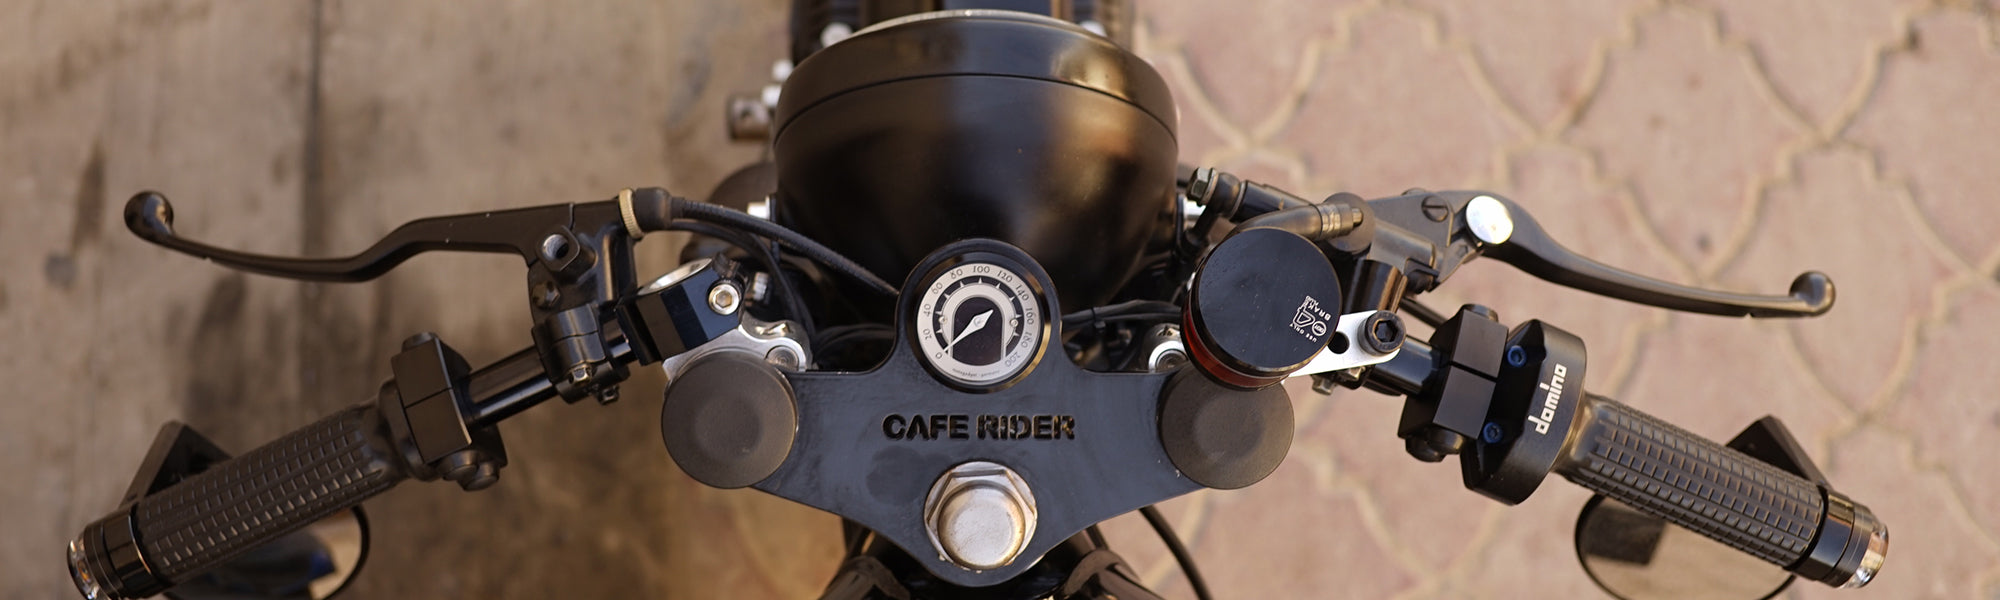 Cafe Rider Custom Motorcycles